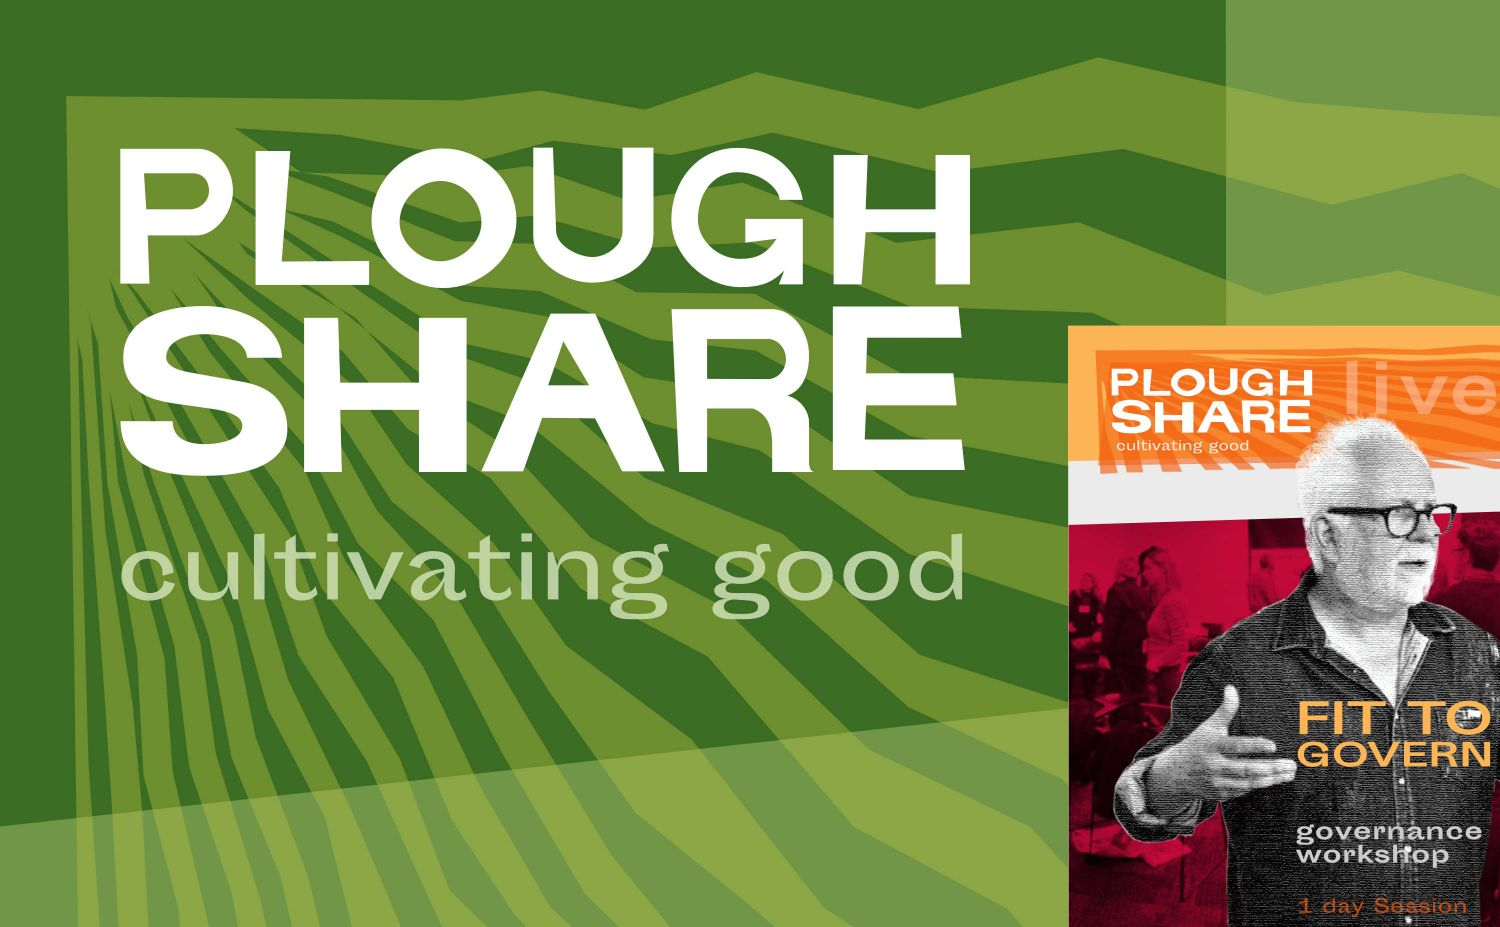 Ploughshare Consulting branding